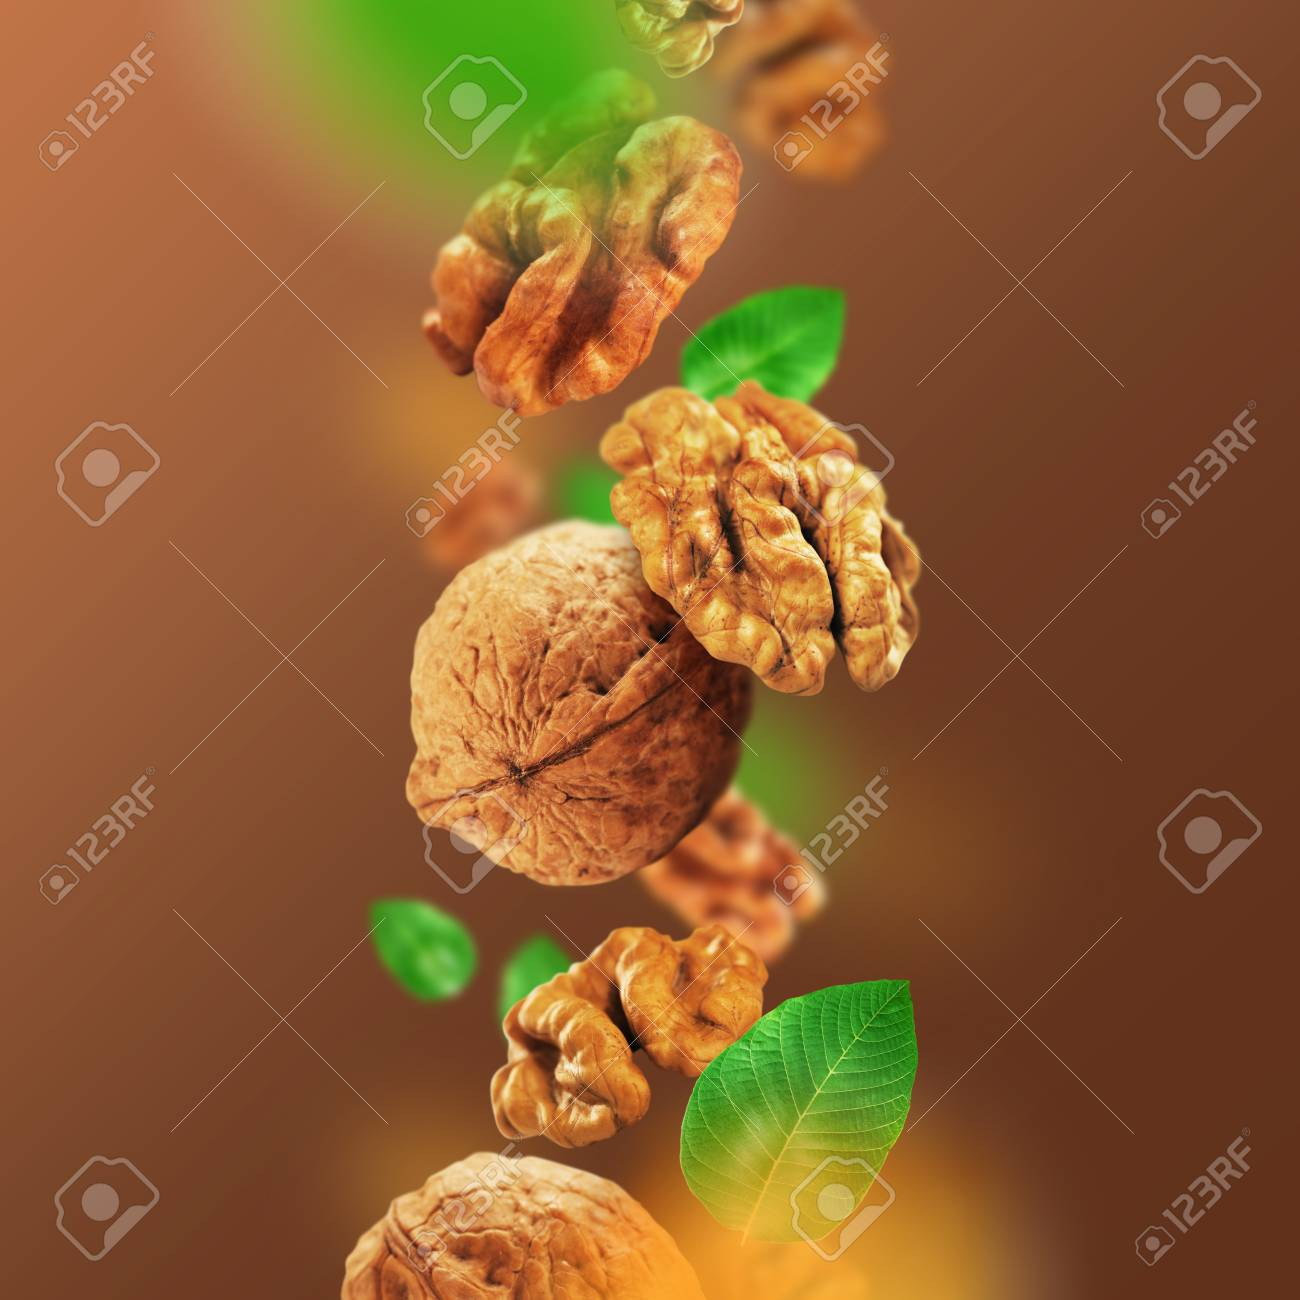 Walnuts and leaves falling from the air - 86784637